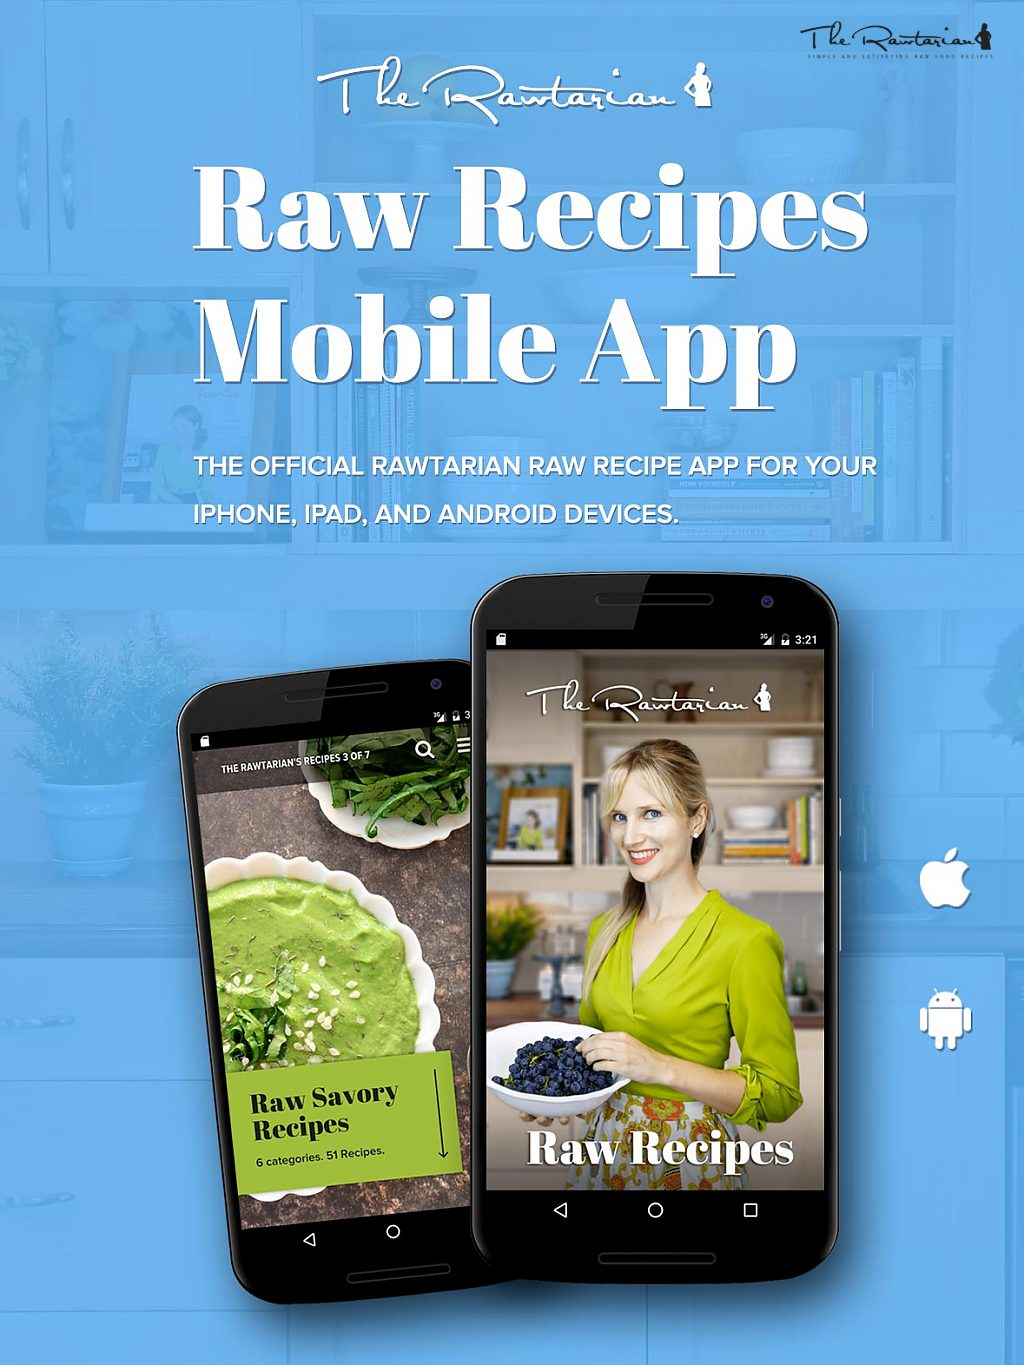 Raw food apps the rawtarian if youre always looking for new raw vegan dishes to prepare or keep going back to the website for those particular recipes youre so fond of forumfinder Images